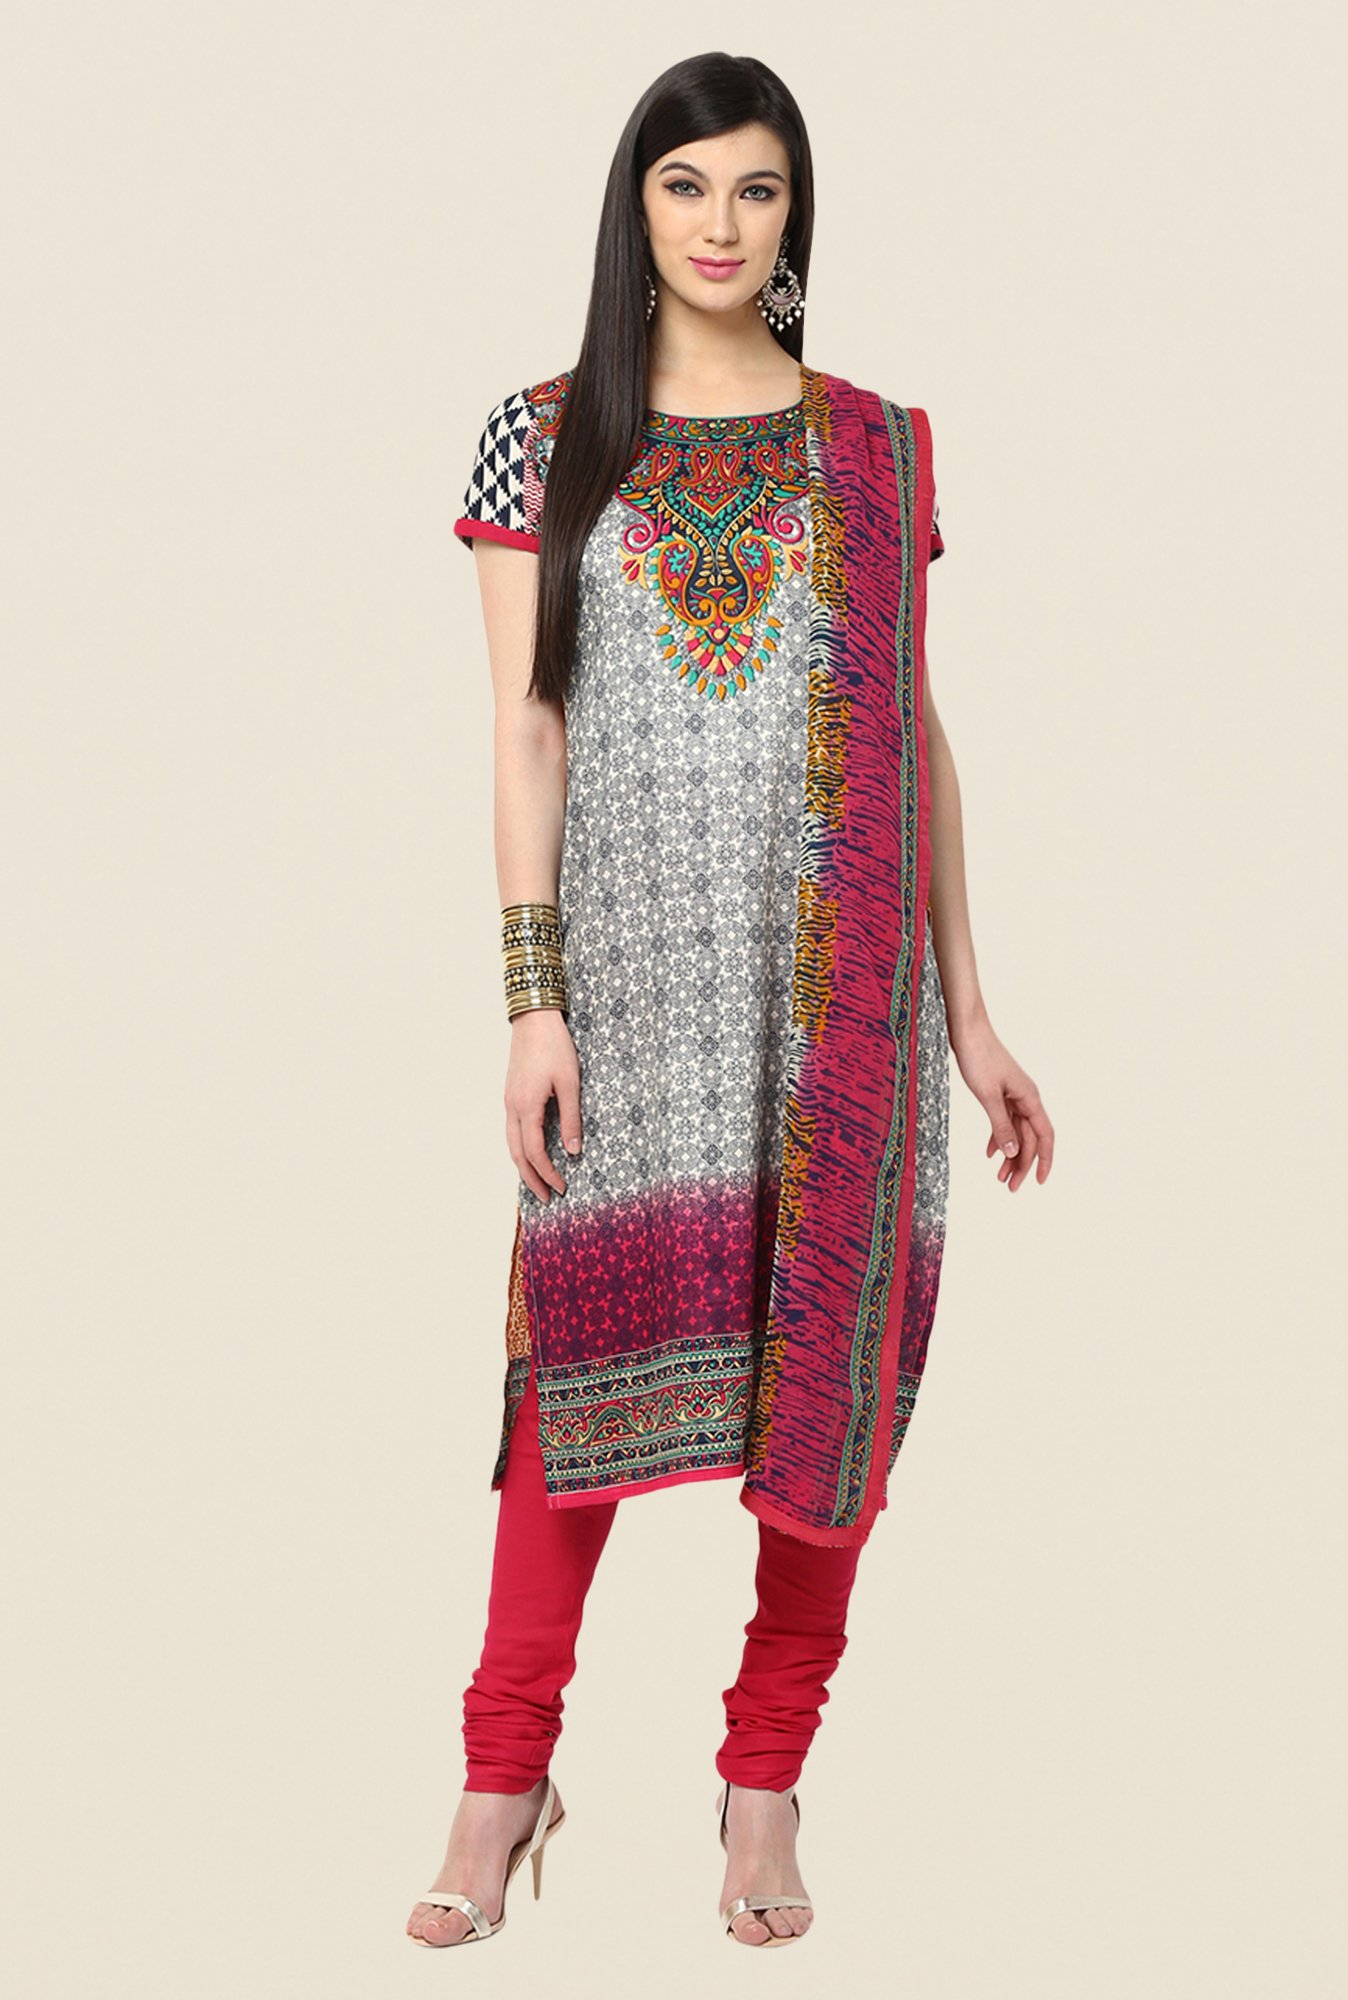 Yepme Grey & Red Baiely Salwar Kameez Set